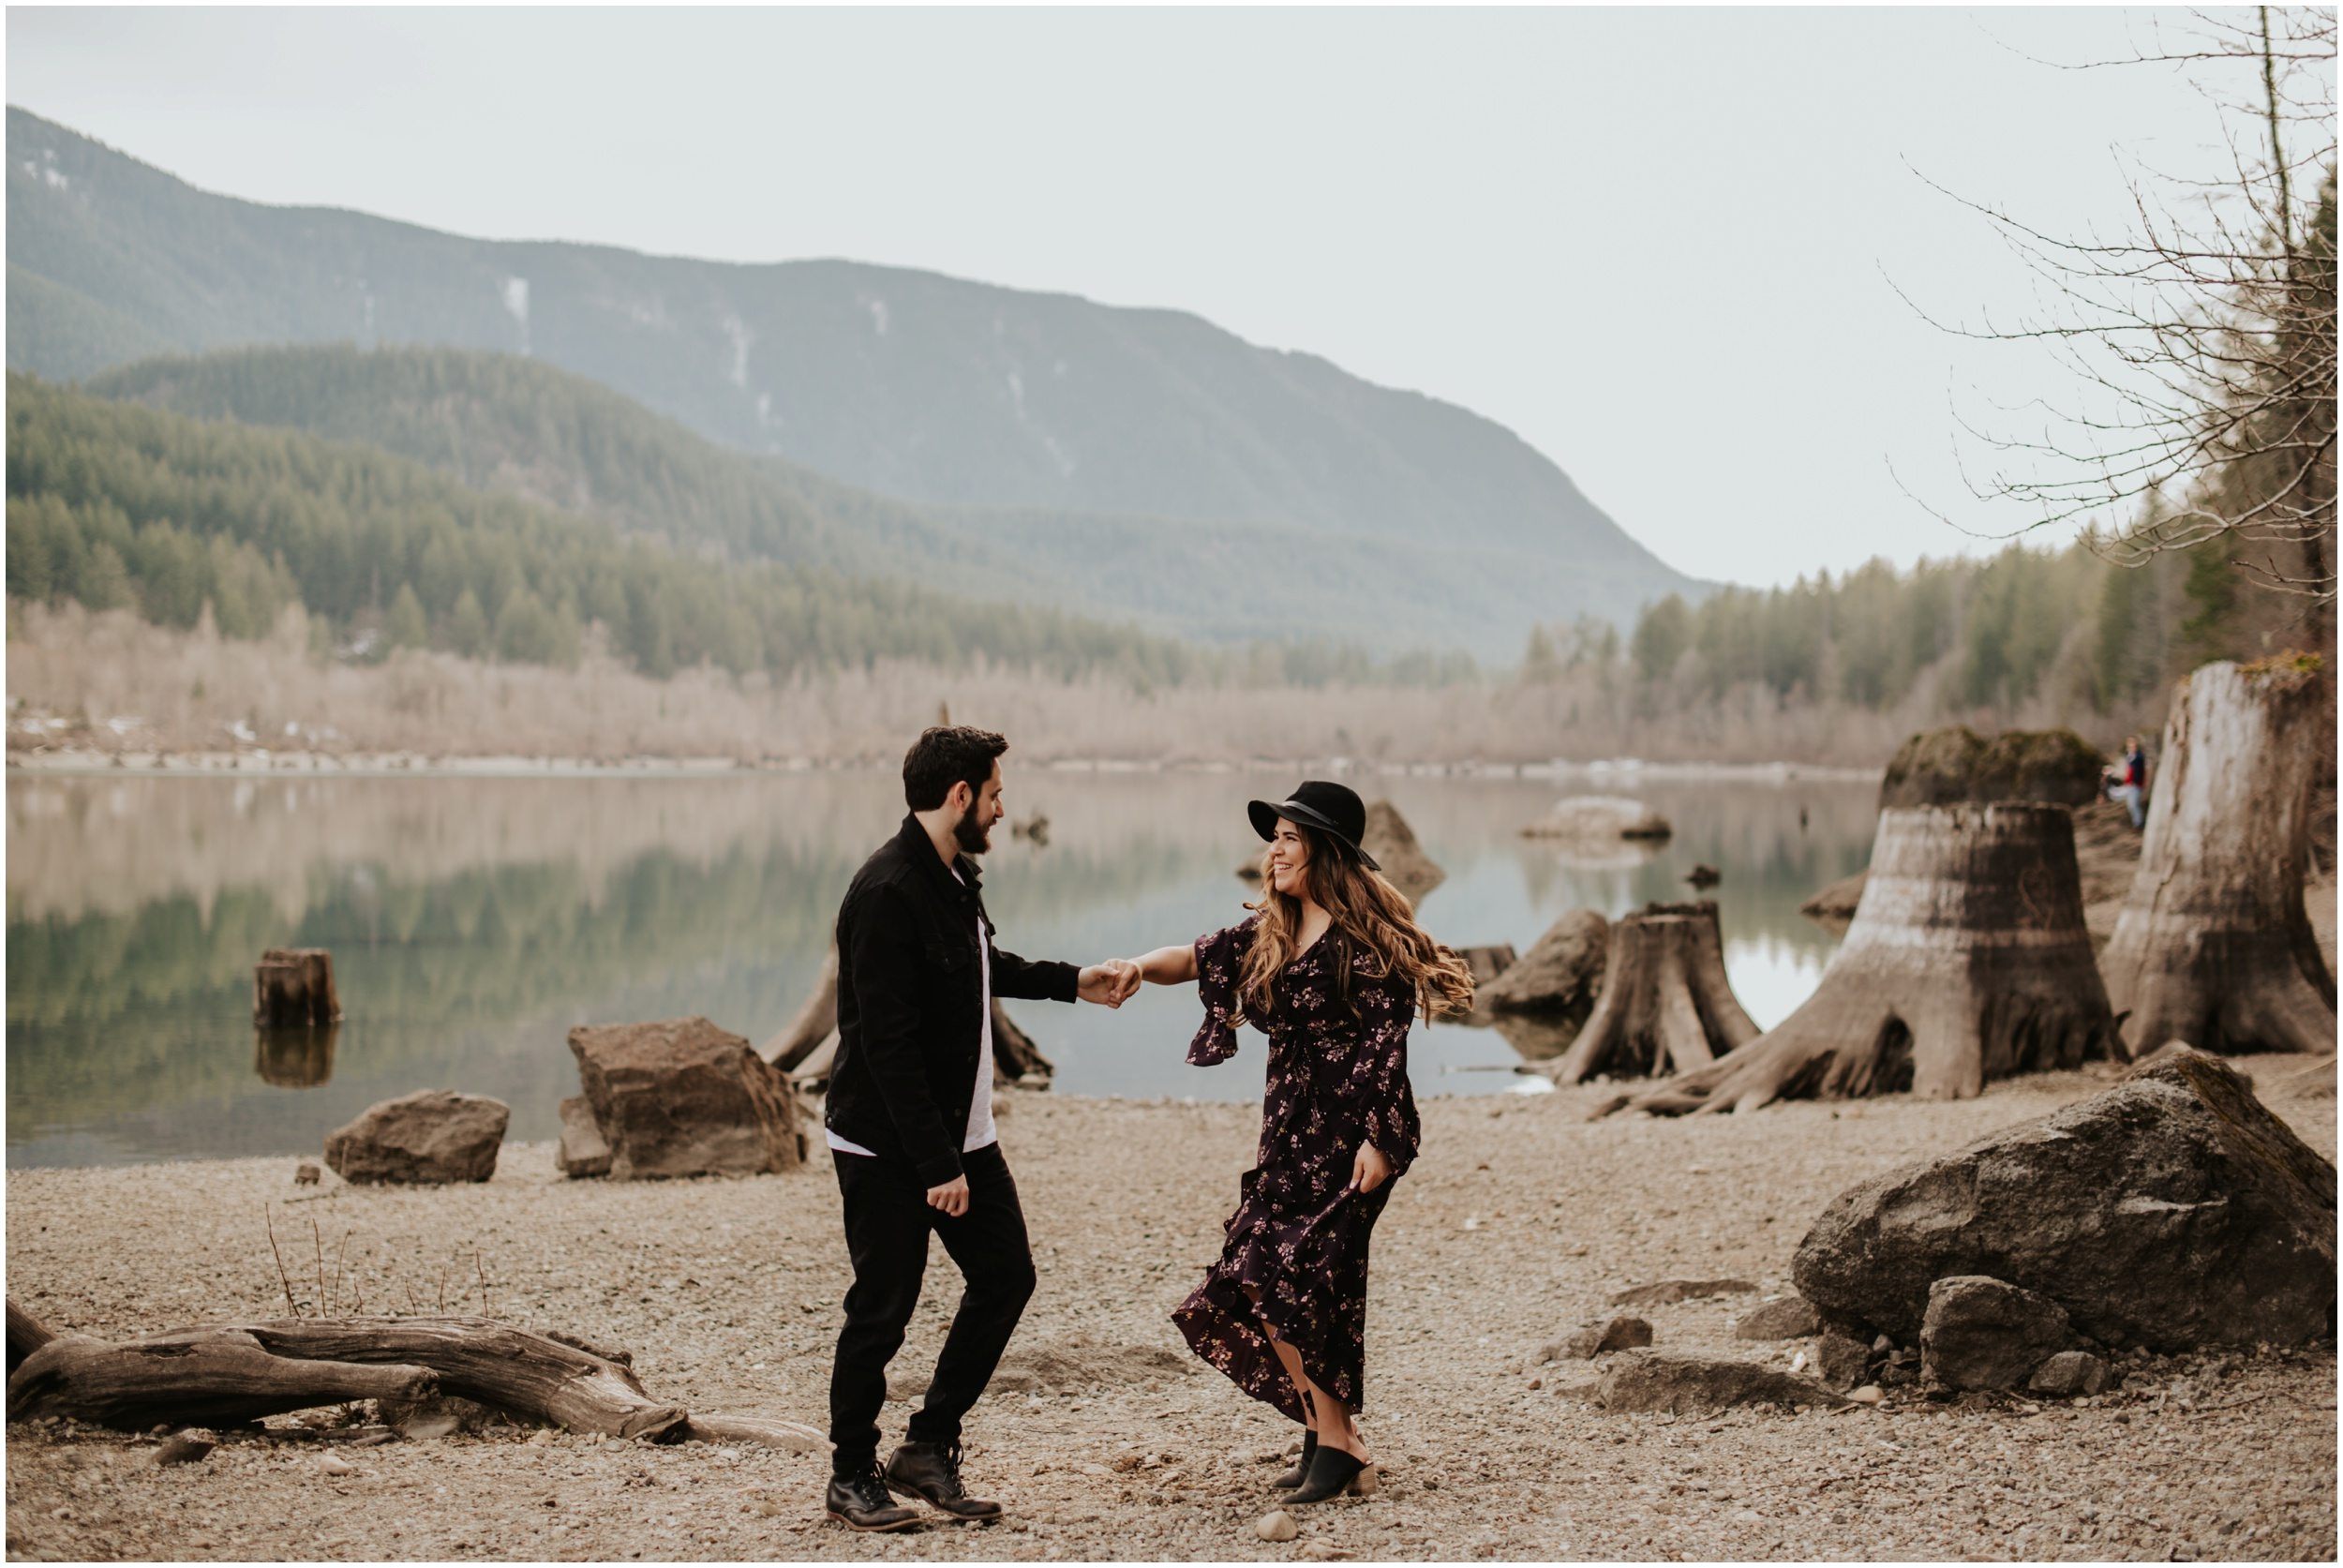 Dancing engagement photos Rattlesnake Lake, WA | Seattle Wedding Photographer www.riversandroadsphotography.com